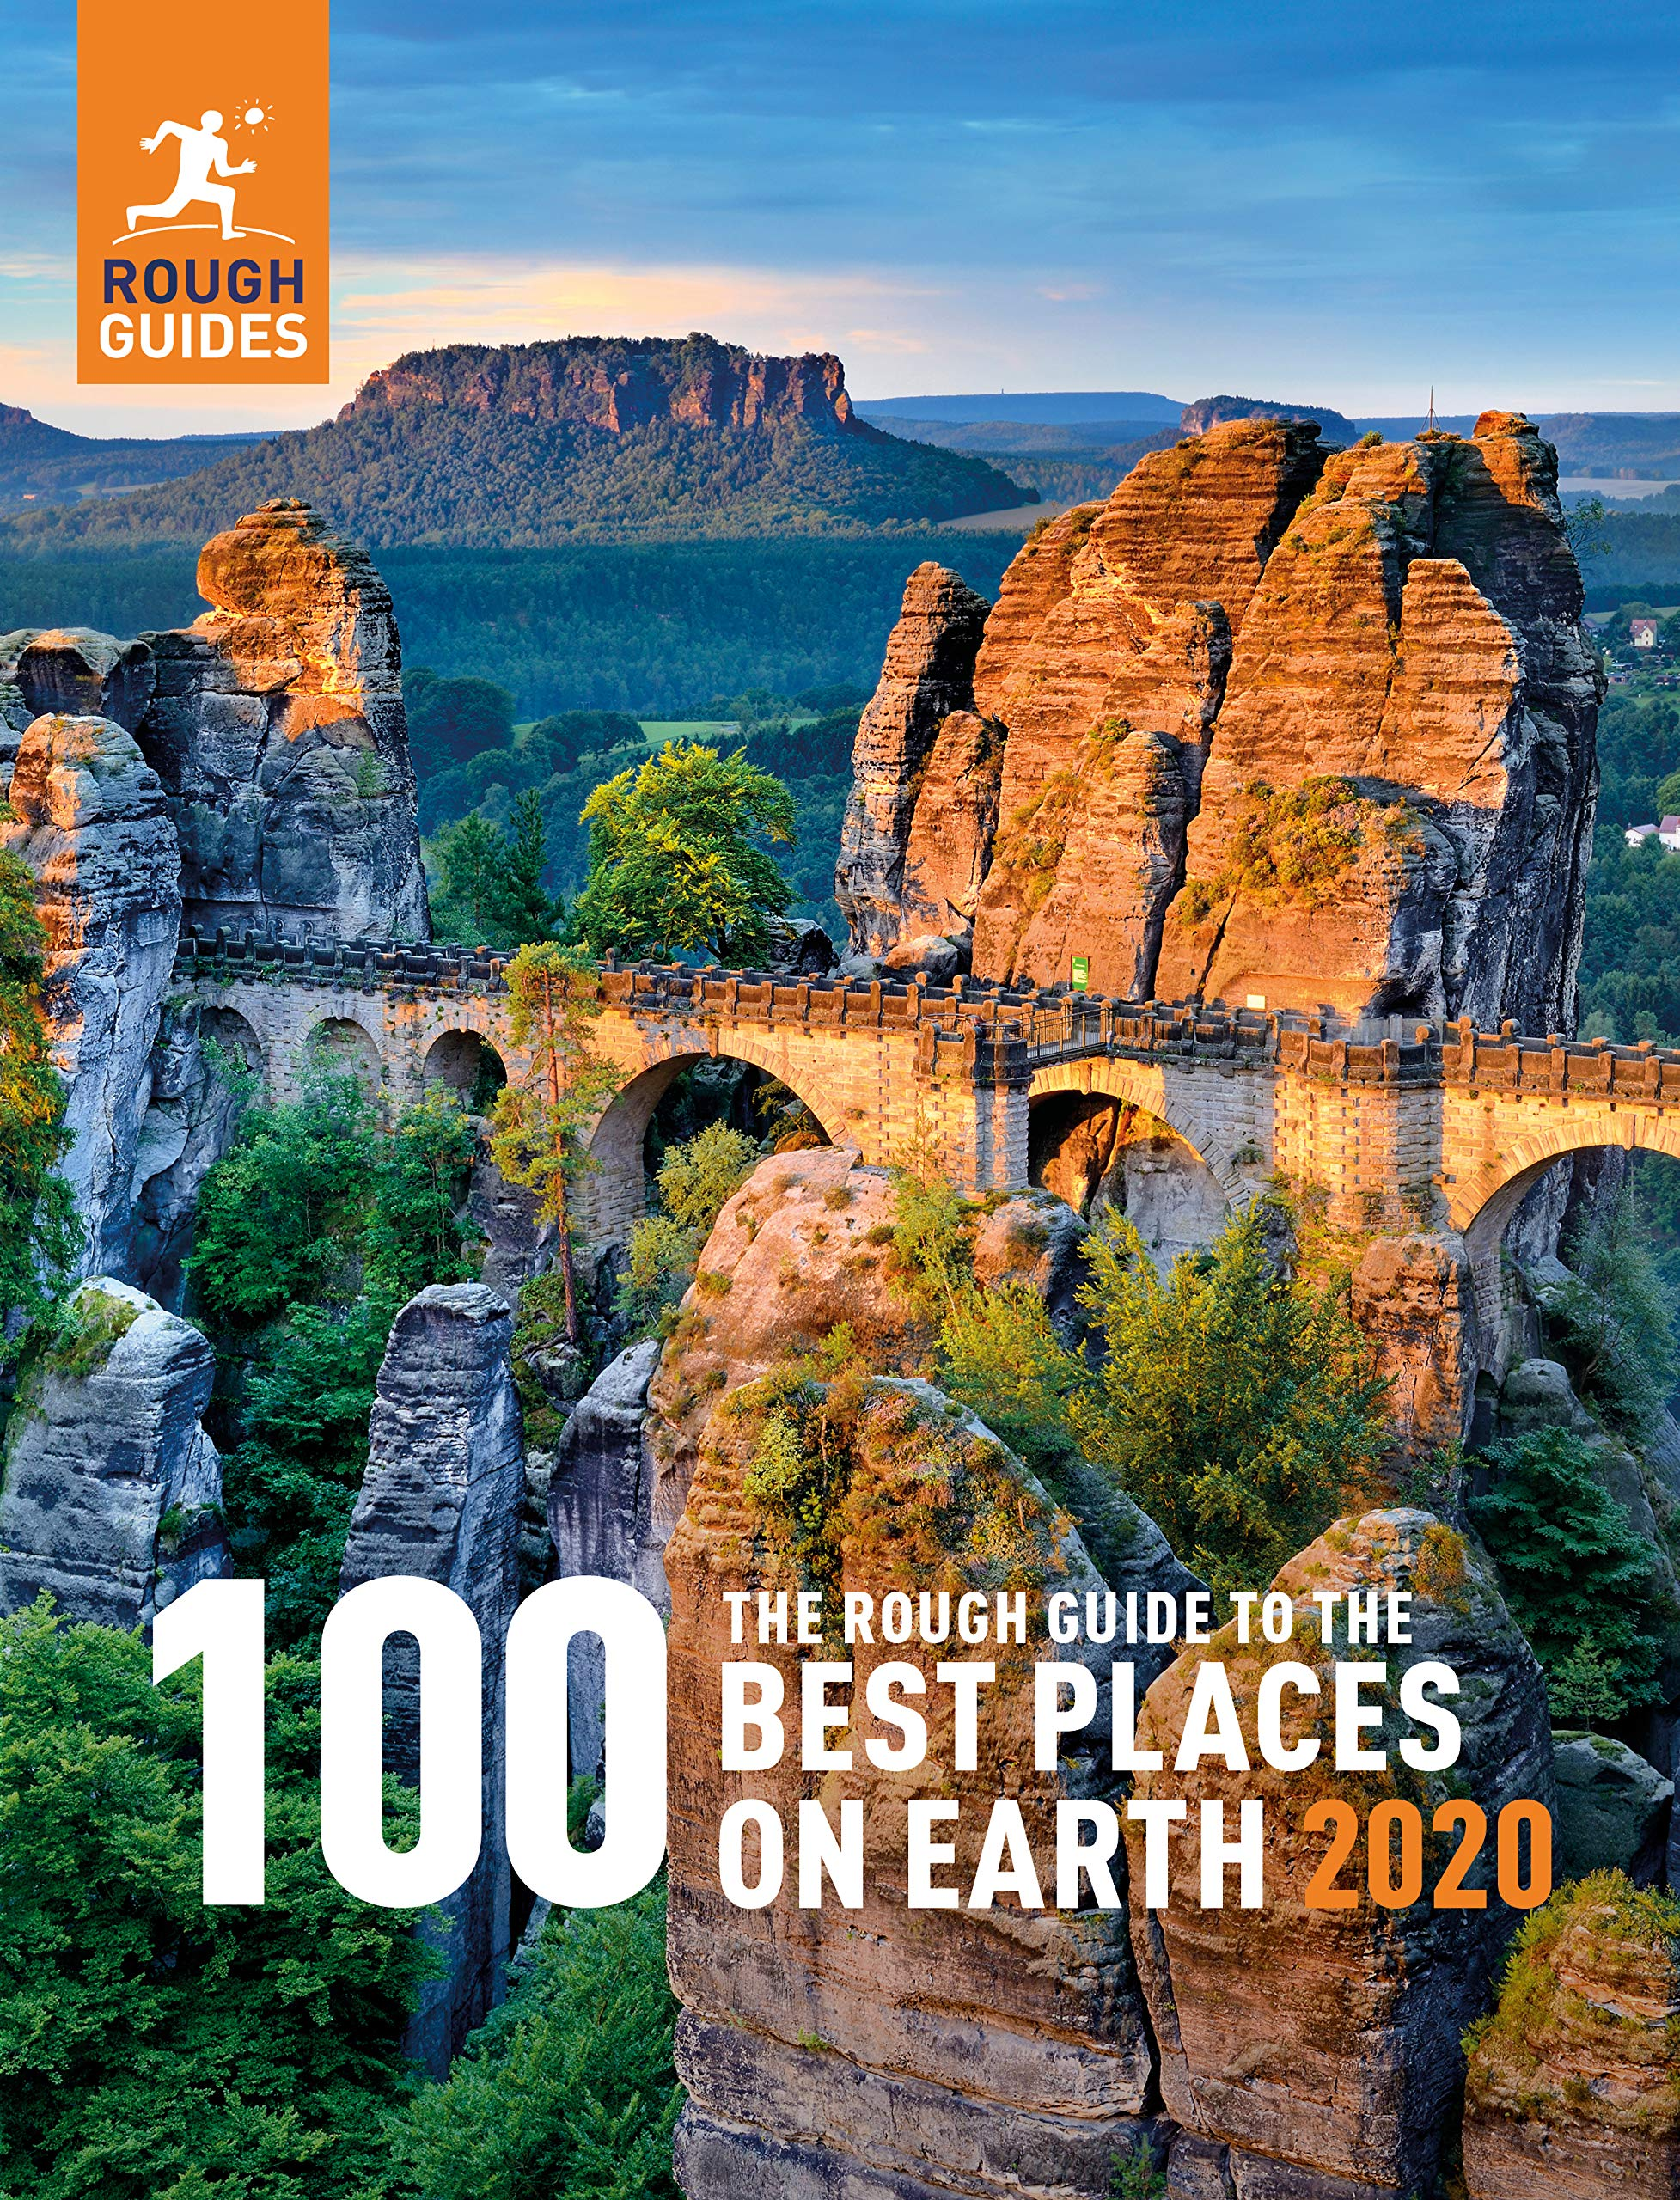 Best Places To Travel 2020.The Rough Guide To The 100 Best Places On Earth 2020 Rough